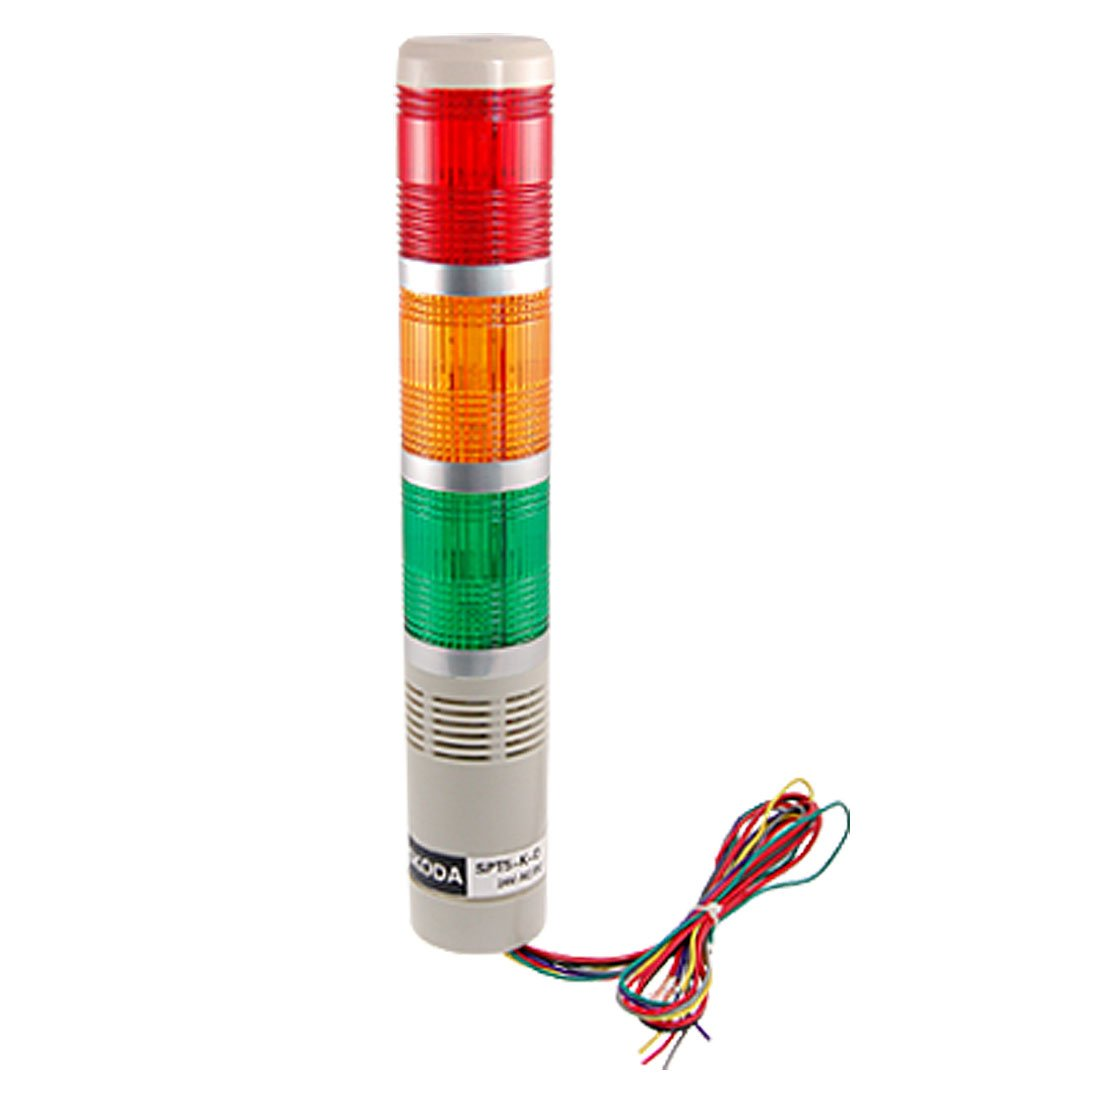 Perfect Uxcell Industrial Signal Tower LED Alarm Lamp, Red/Green/Yellow Light, DC,  24V: Amazon.com: Industrial U0026 Scientific